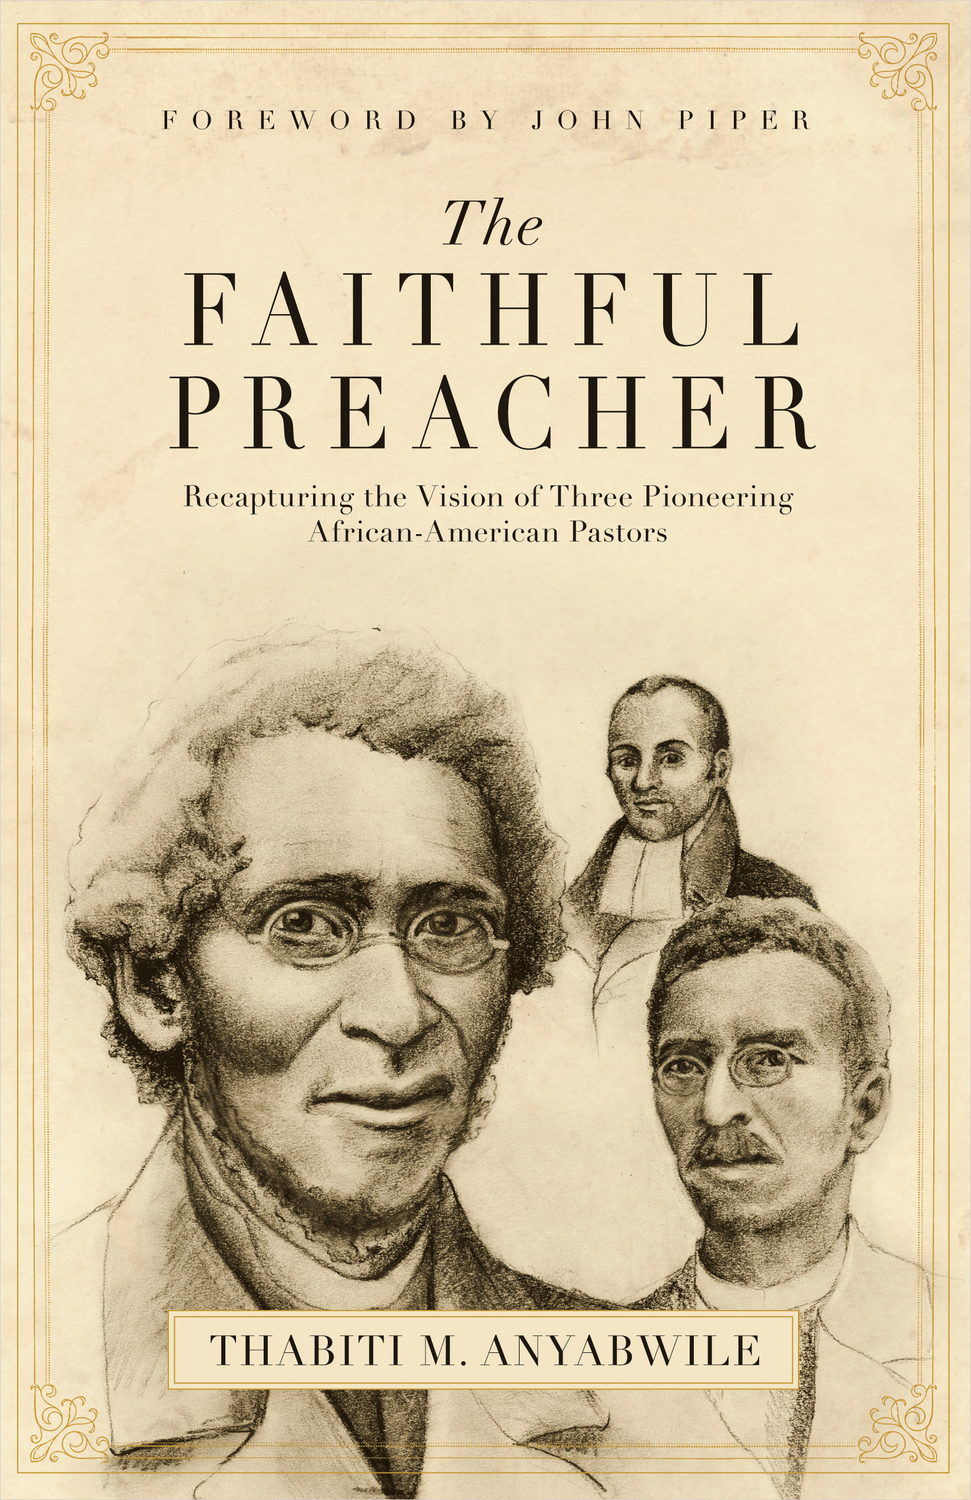 The Faithful Preacher